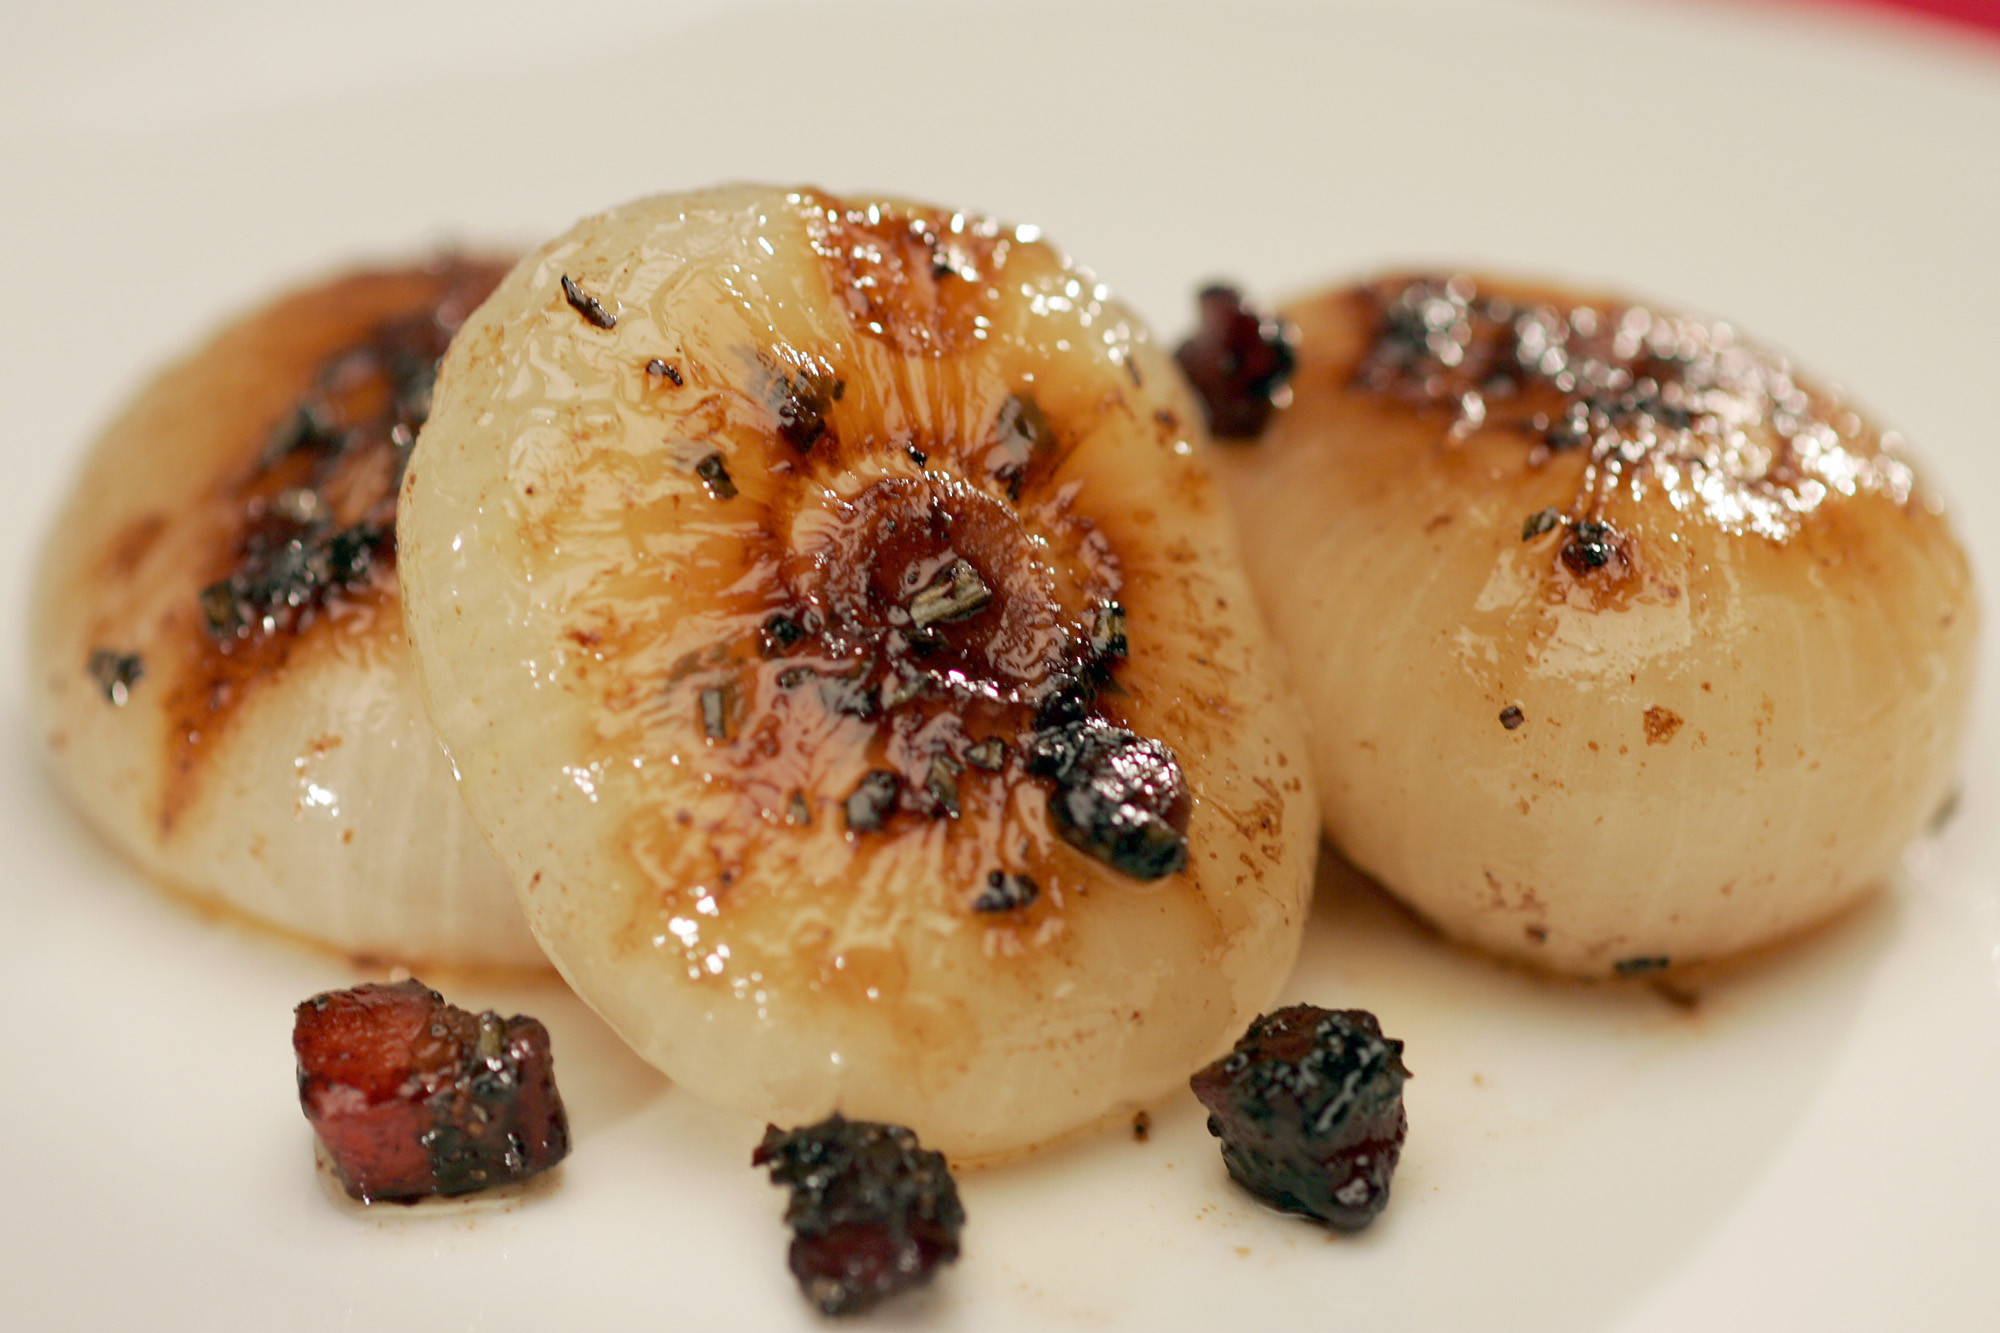 Photos: 97 great Thanksgiving recipes - Glazed cipollini onions